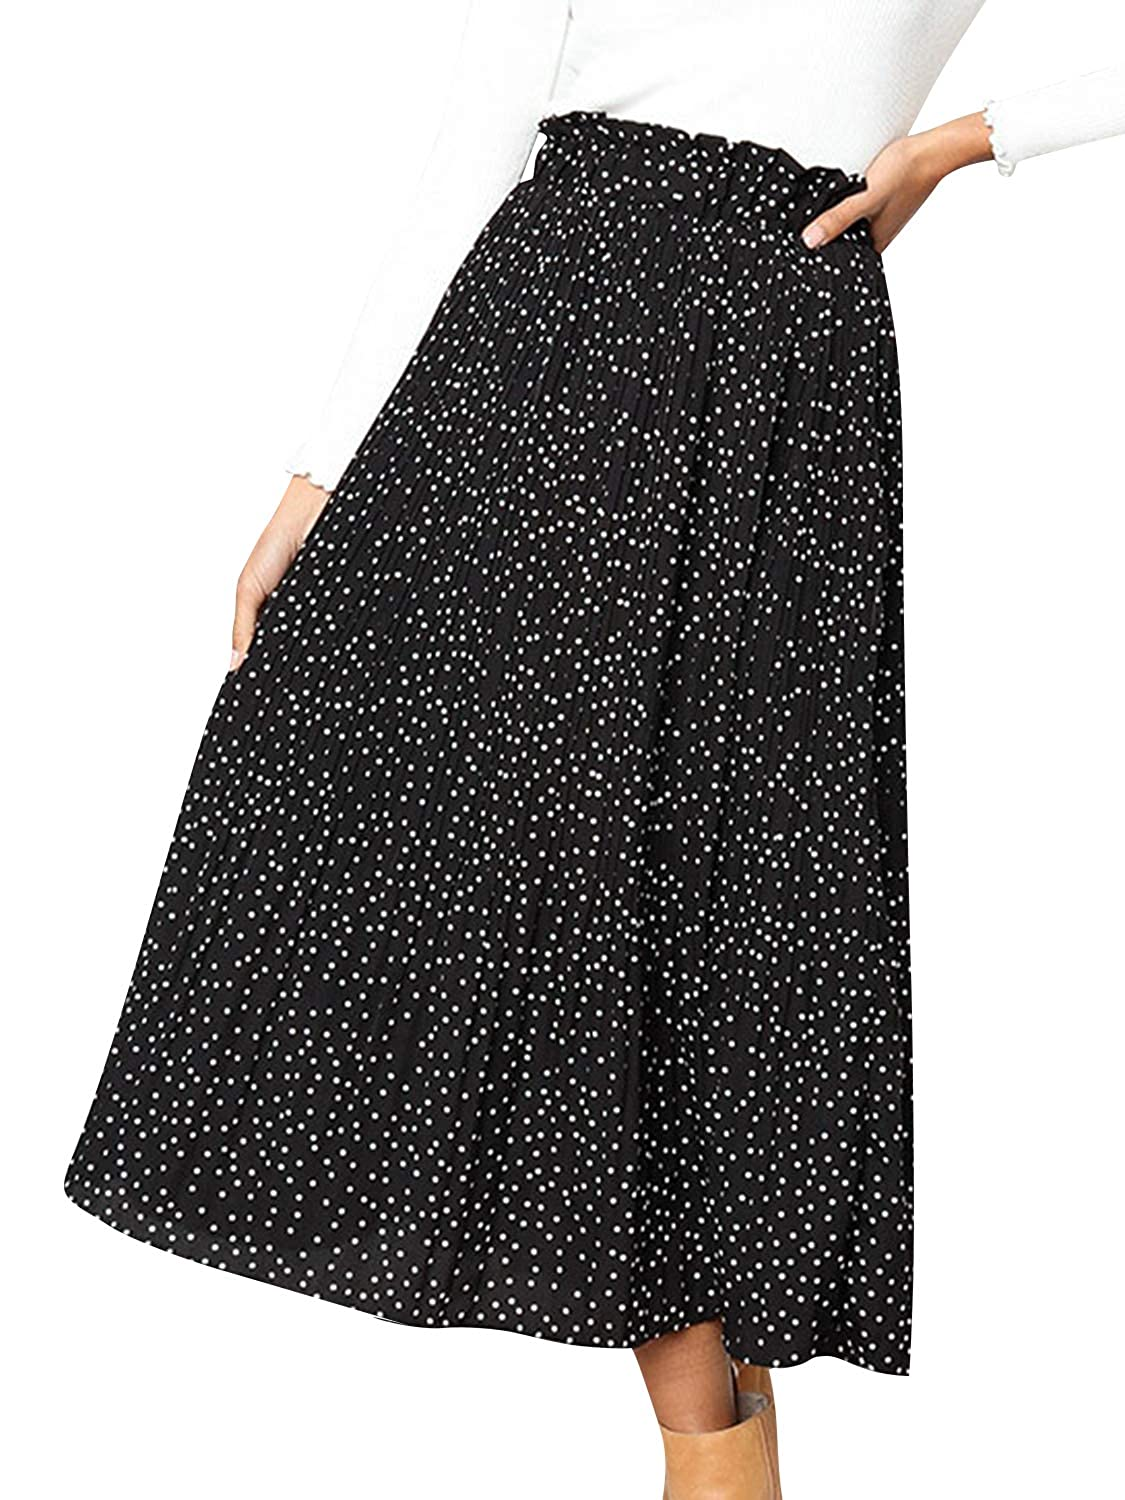 0d6059158 Miessial Women's Chiffon High Waist Pleated Midi Skirts Boho Floral Print  Skirt at Amazon Women's Clothing store: